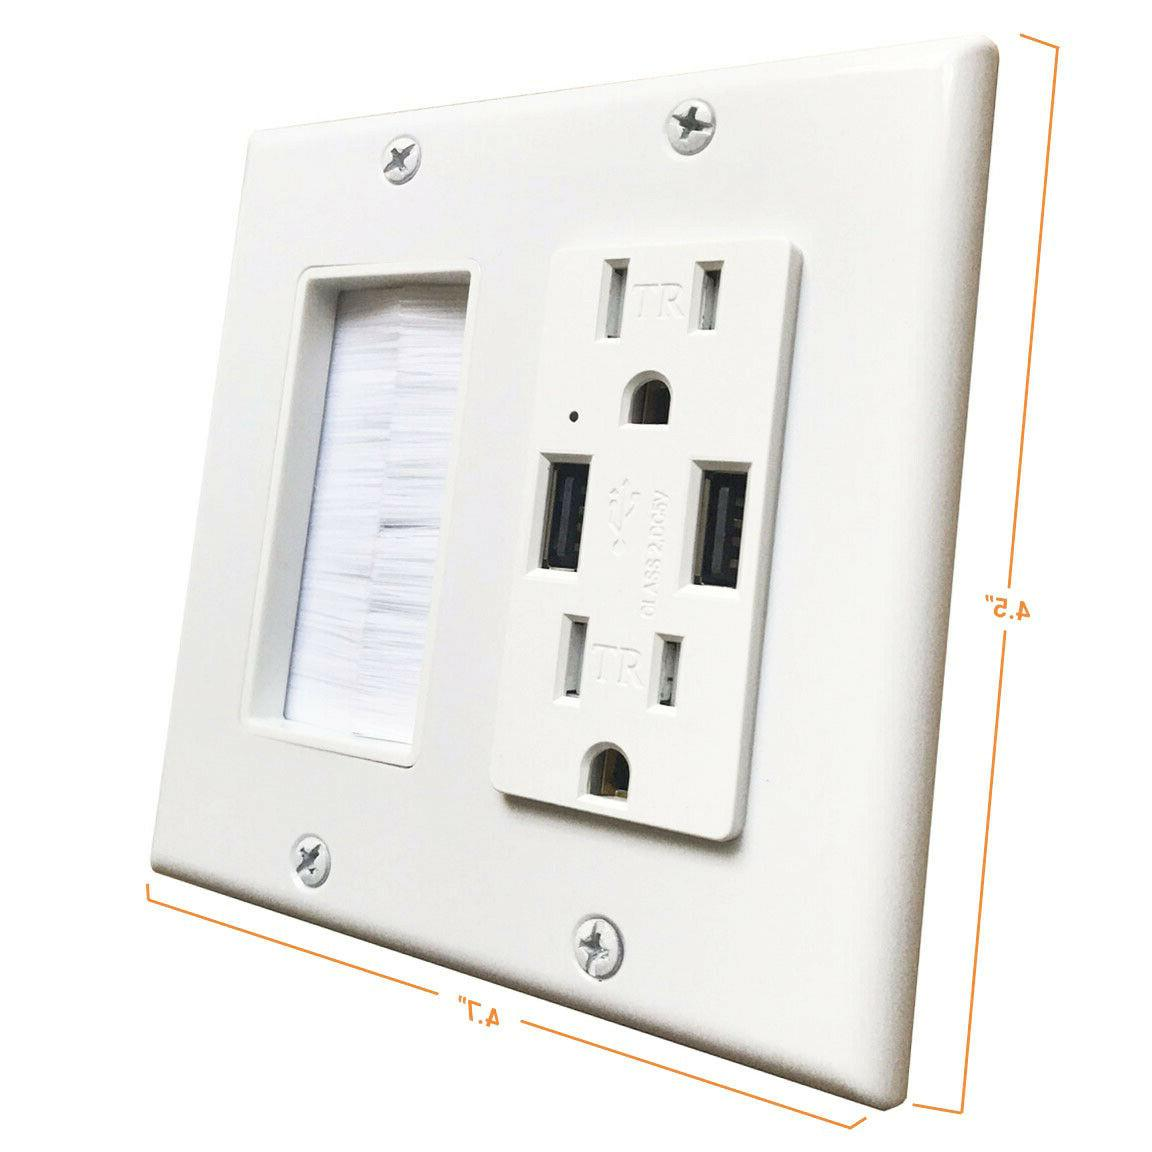 Brush Wall Plate Electrical 15a, 2.4A USB Charging